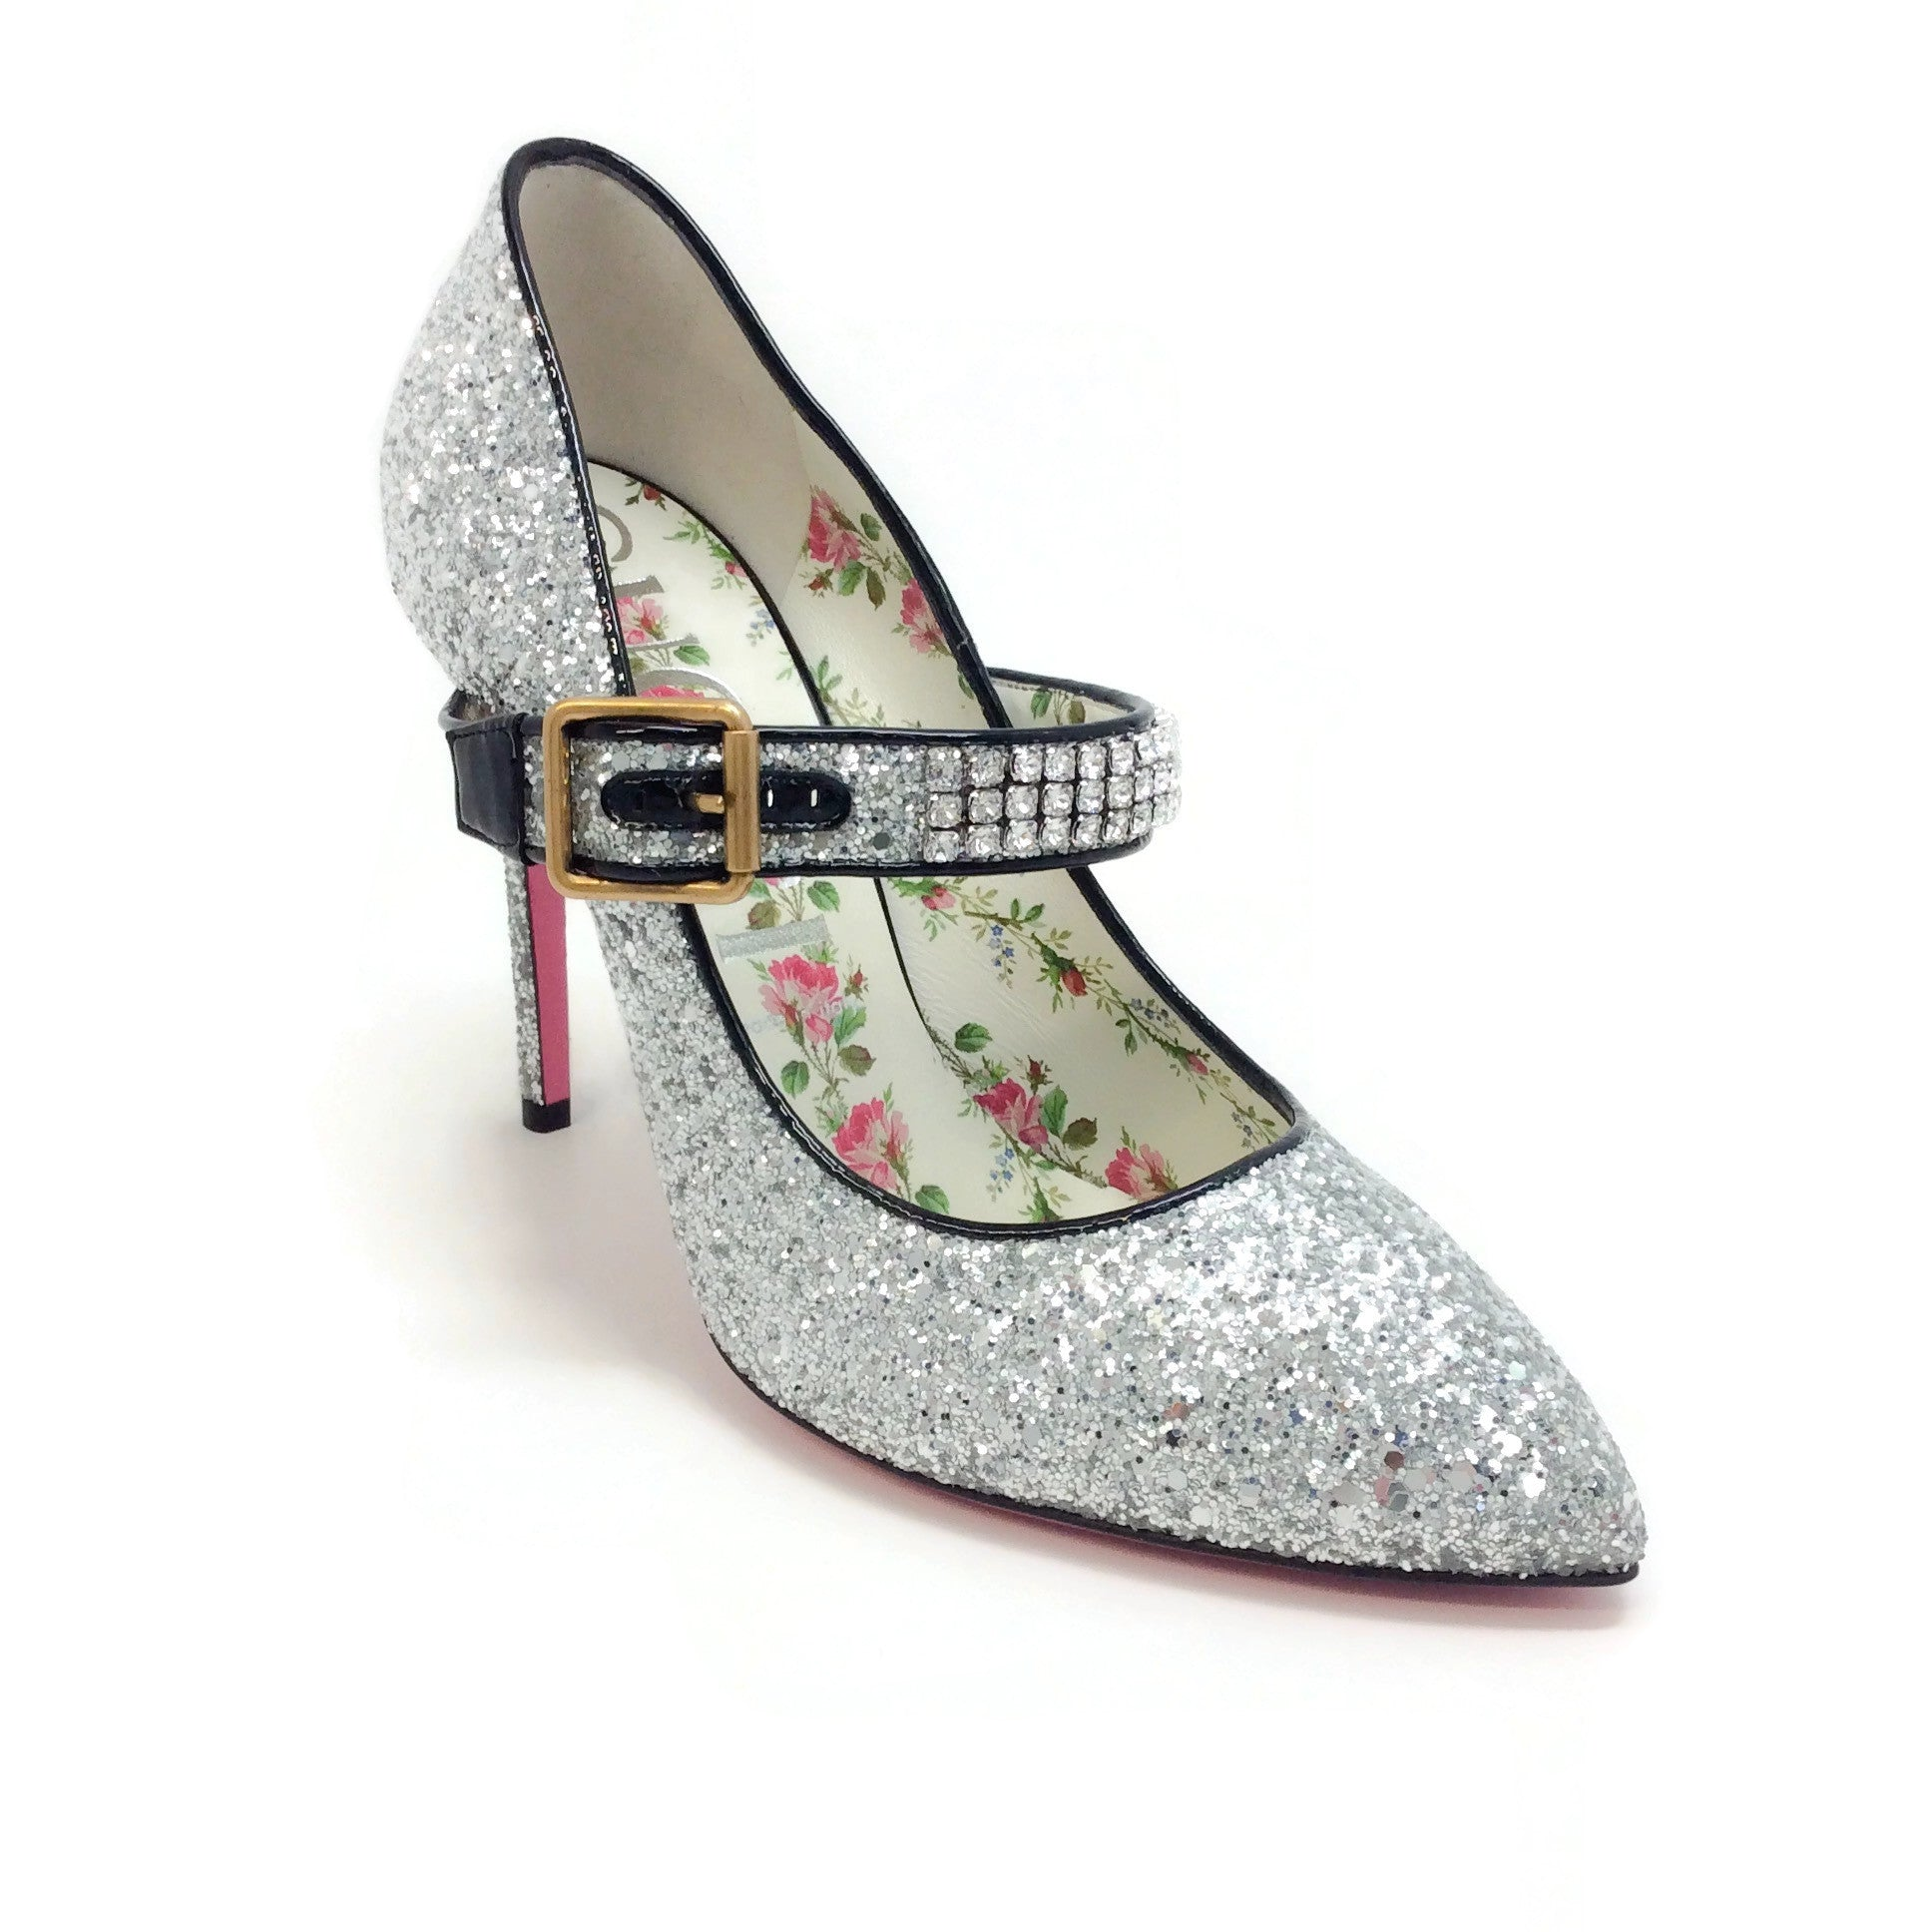 Gucci Silver Glitter Crystal Adorned Strap Pumps